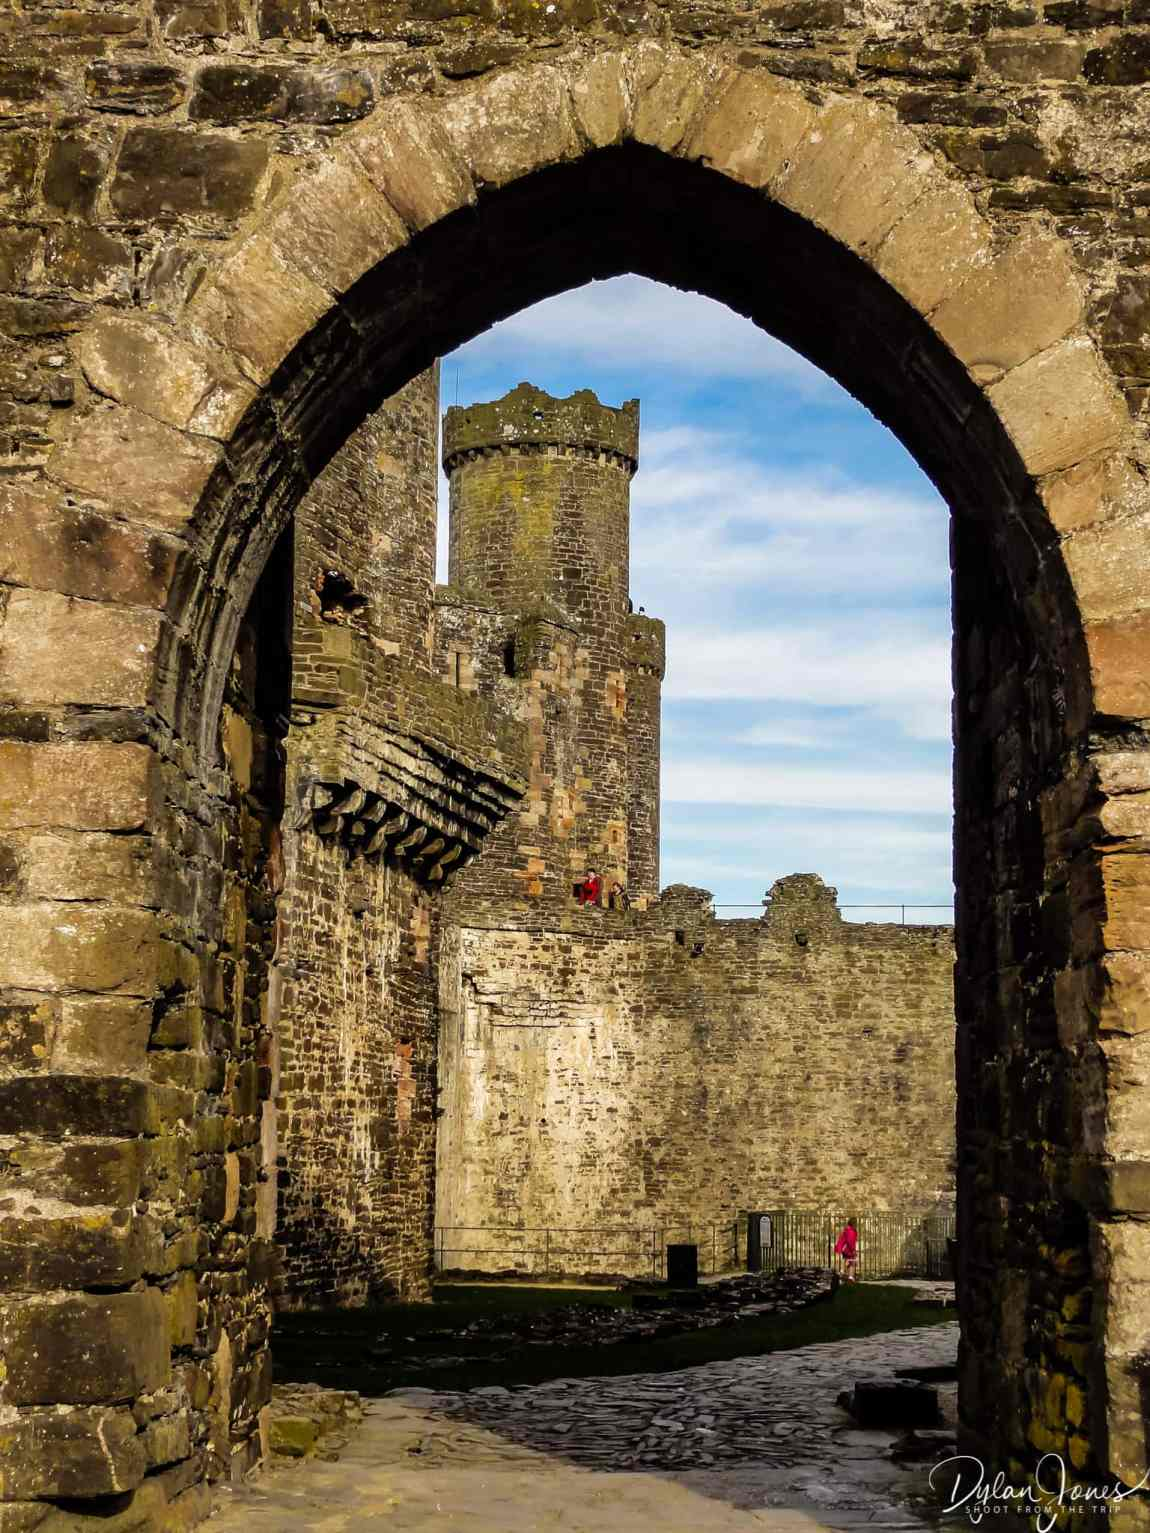 One of Conwy Castle's towers framed by an archway